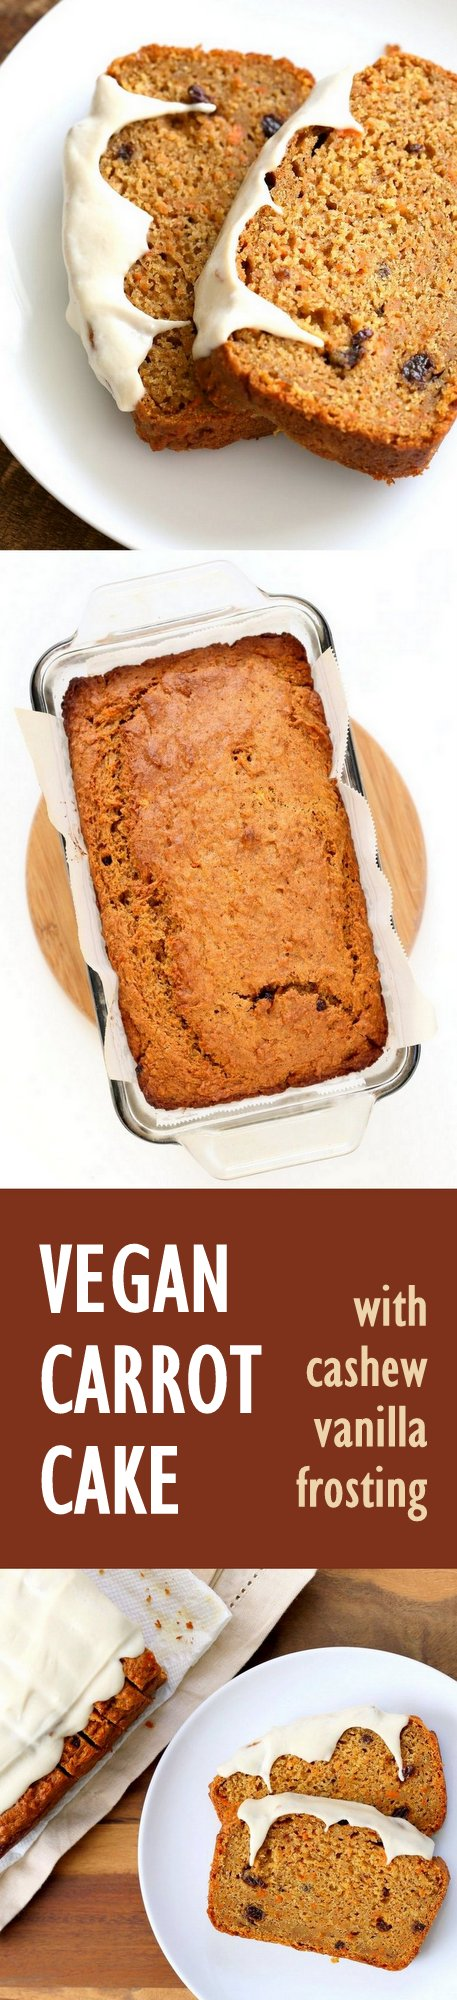 Vegan Carrot Cake Recipe with cinnamon and cardamom. Vegan Carrot Cake Quick bread loaf with Cashew Cream Frosting. Moist, spiced, full of carrots. Low oil. #vegan #Soyfree #Palmoilfree #Easter #recipe | VeganRicha.com